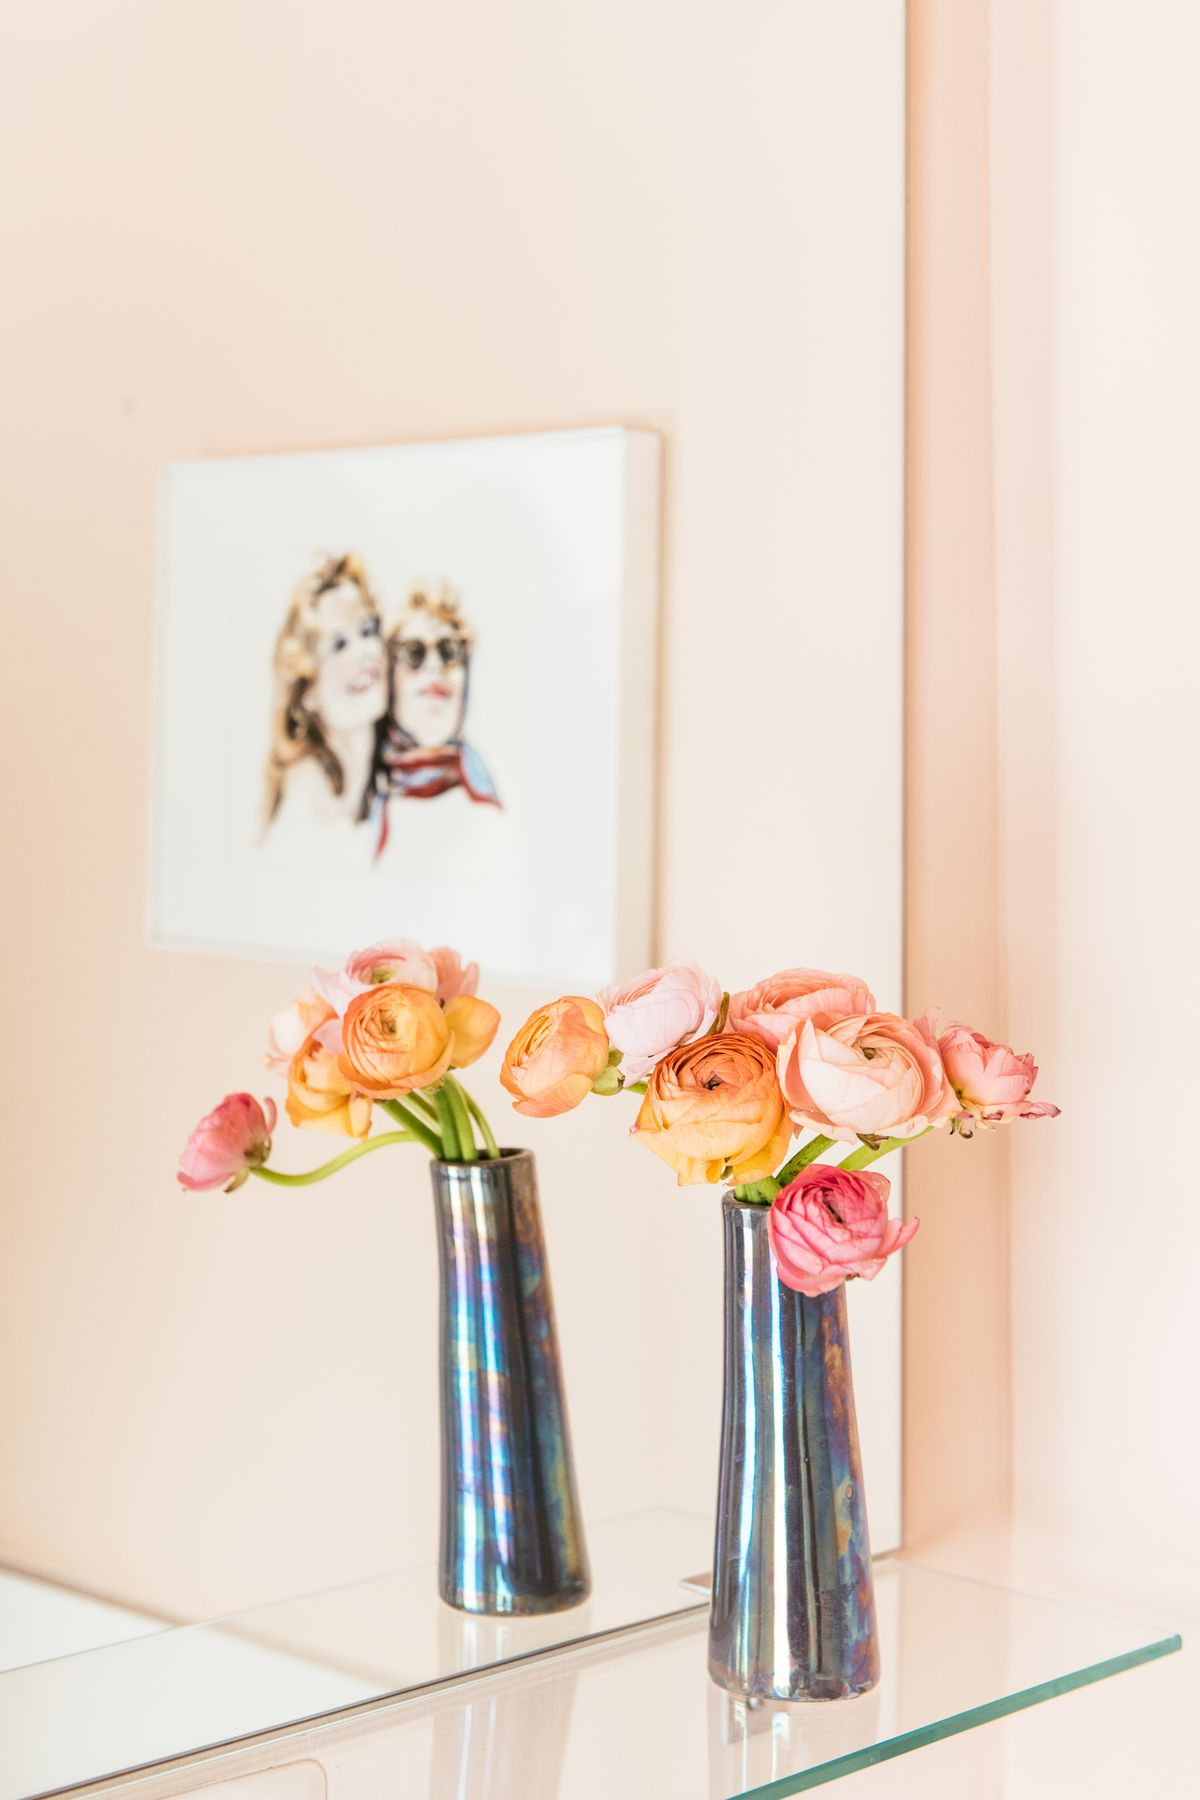 A shelf in the bathroom. There is a glass shelf with a metallic silver vase which holds colorful flowers. There is a mirror that shows a work of art hanging on the wall in its reflection.